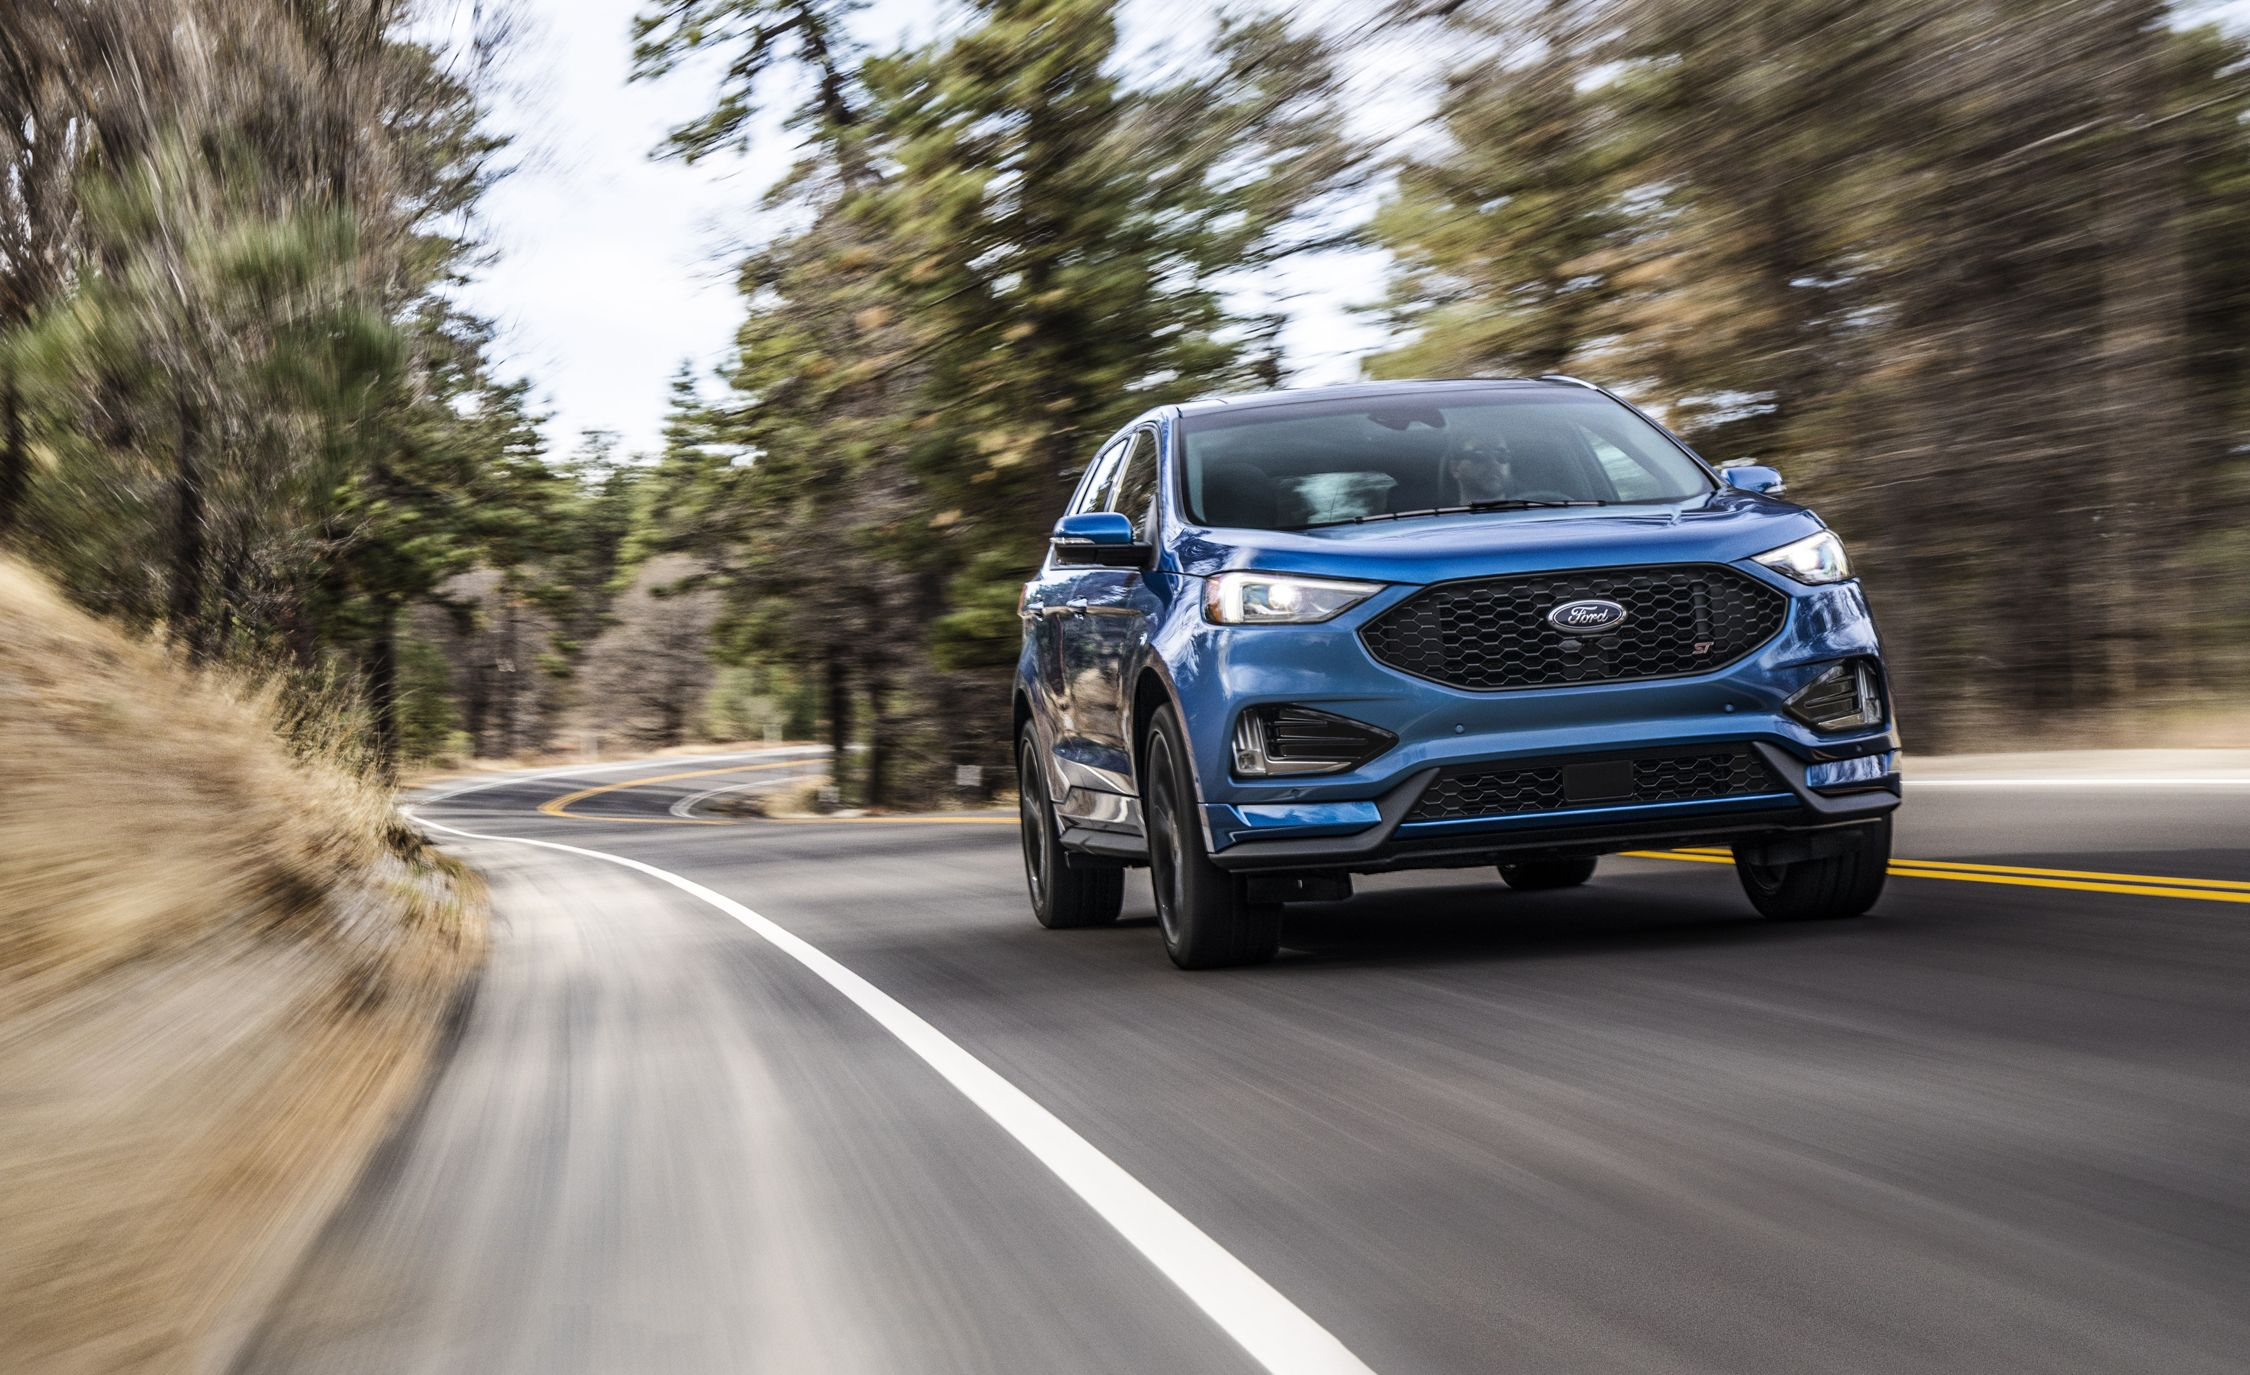 2019 Ford Edge ST: Yes, There's Now an ST SUV